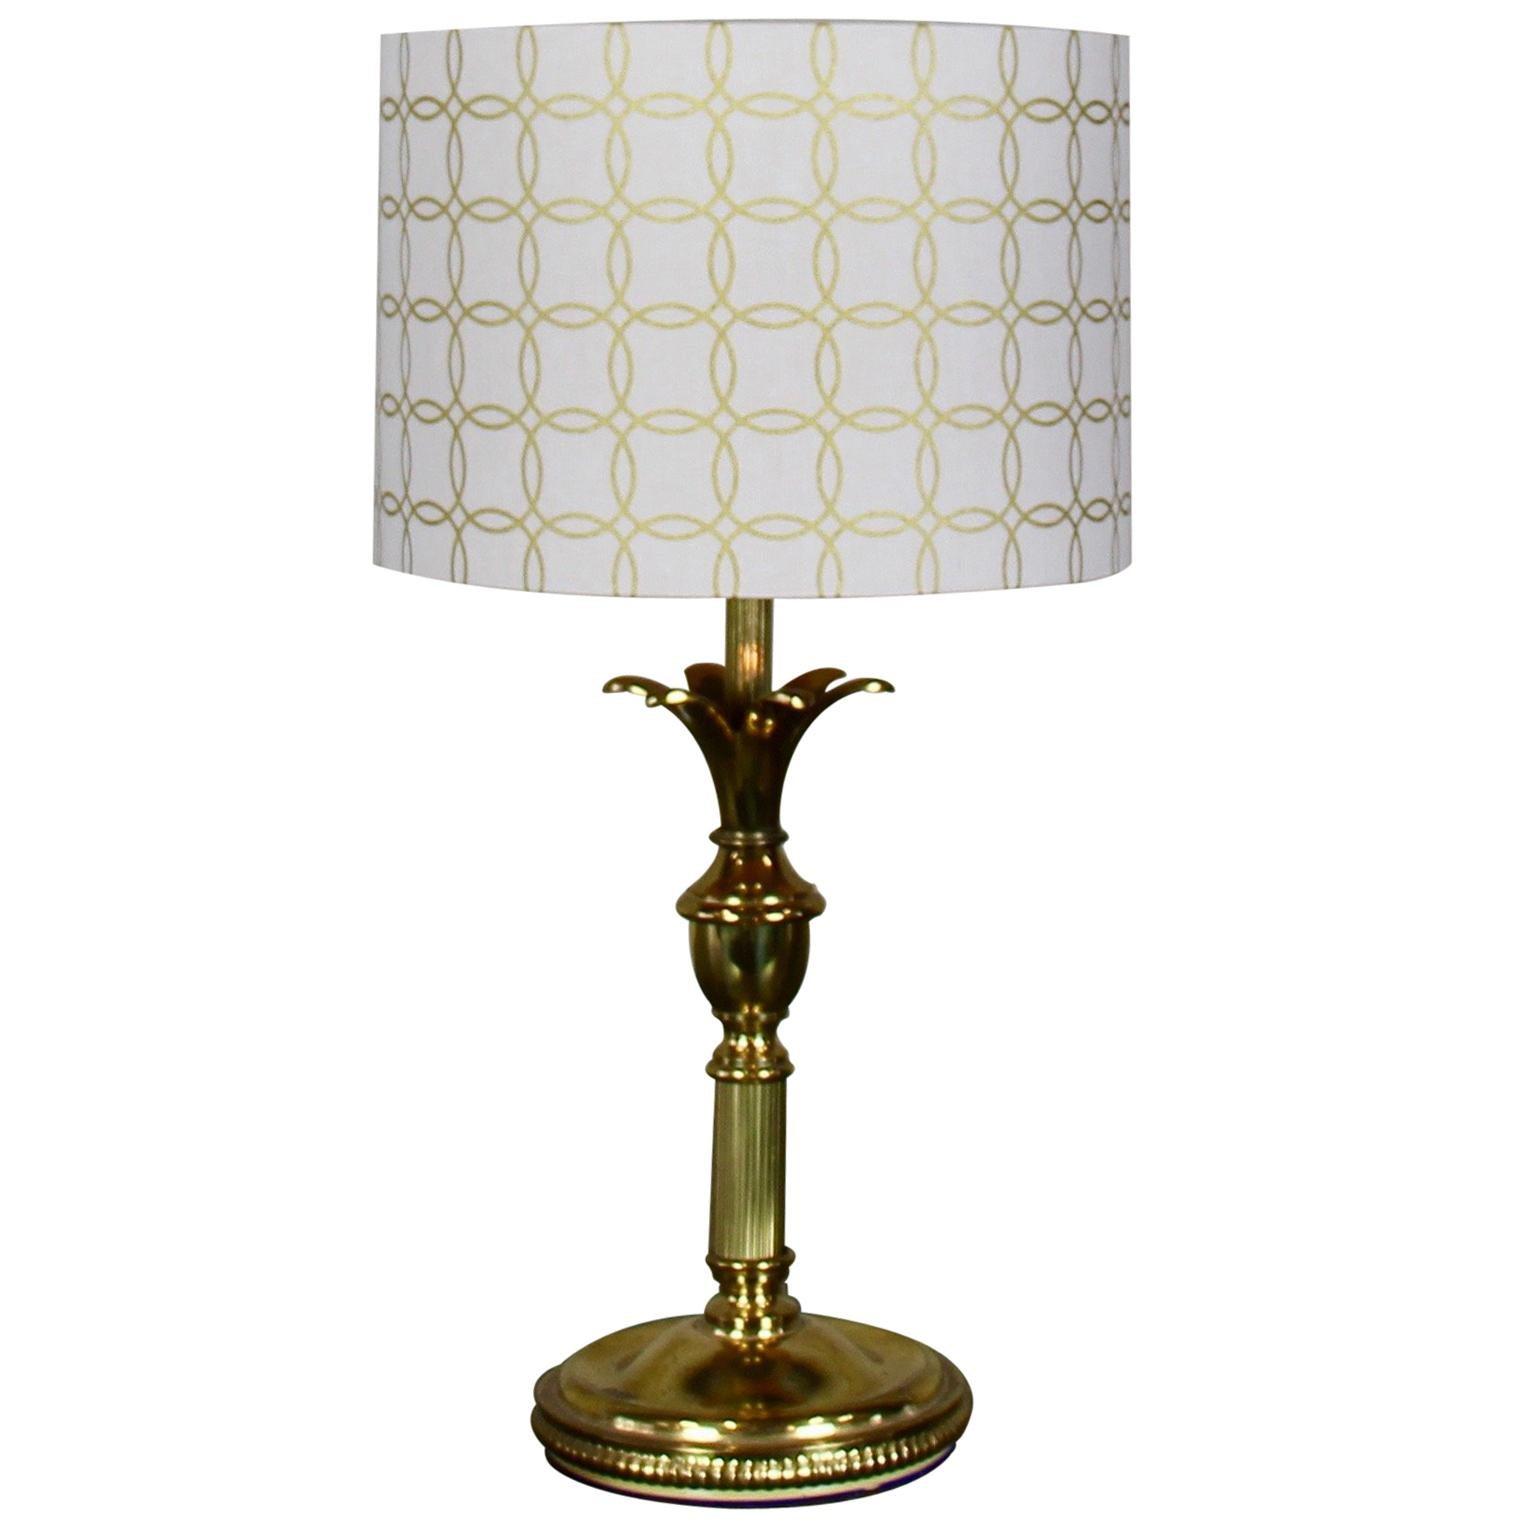 Table Pineapple Stylized Brass Lamp With vmNO8n0w